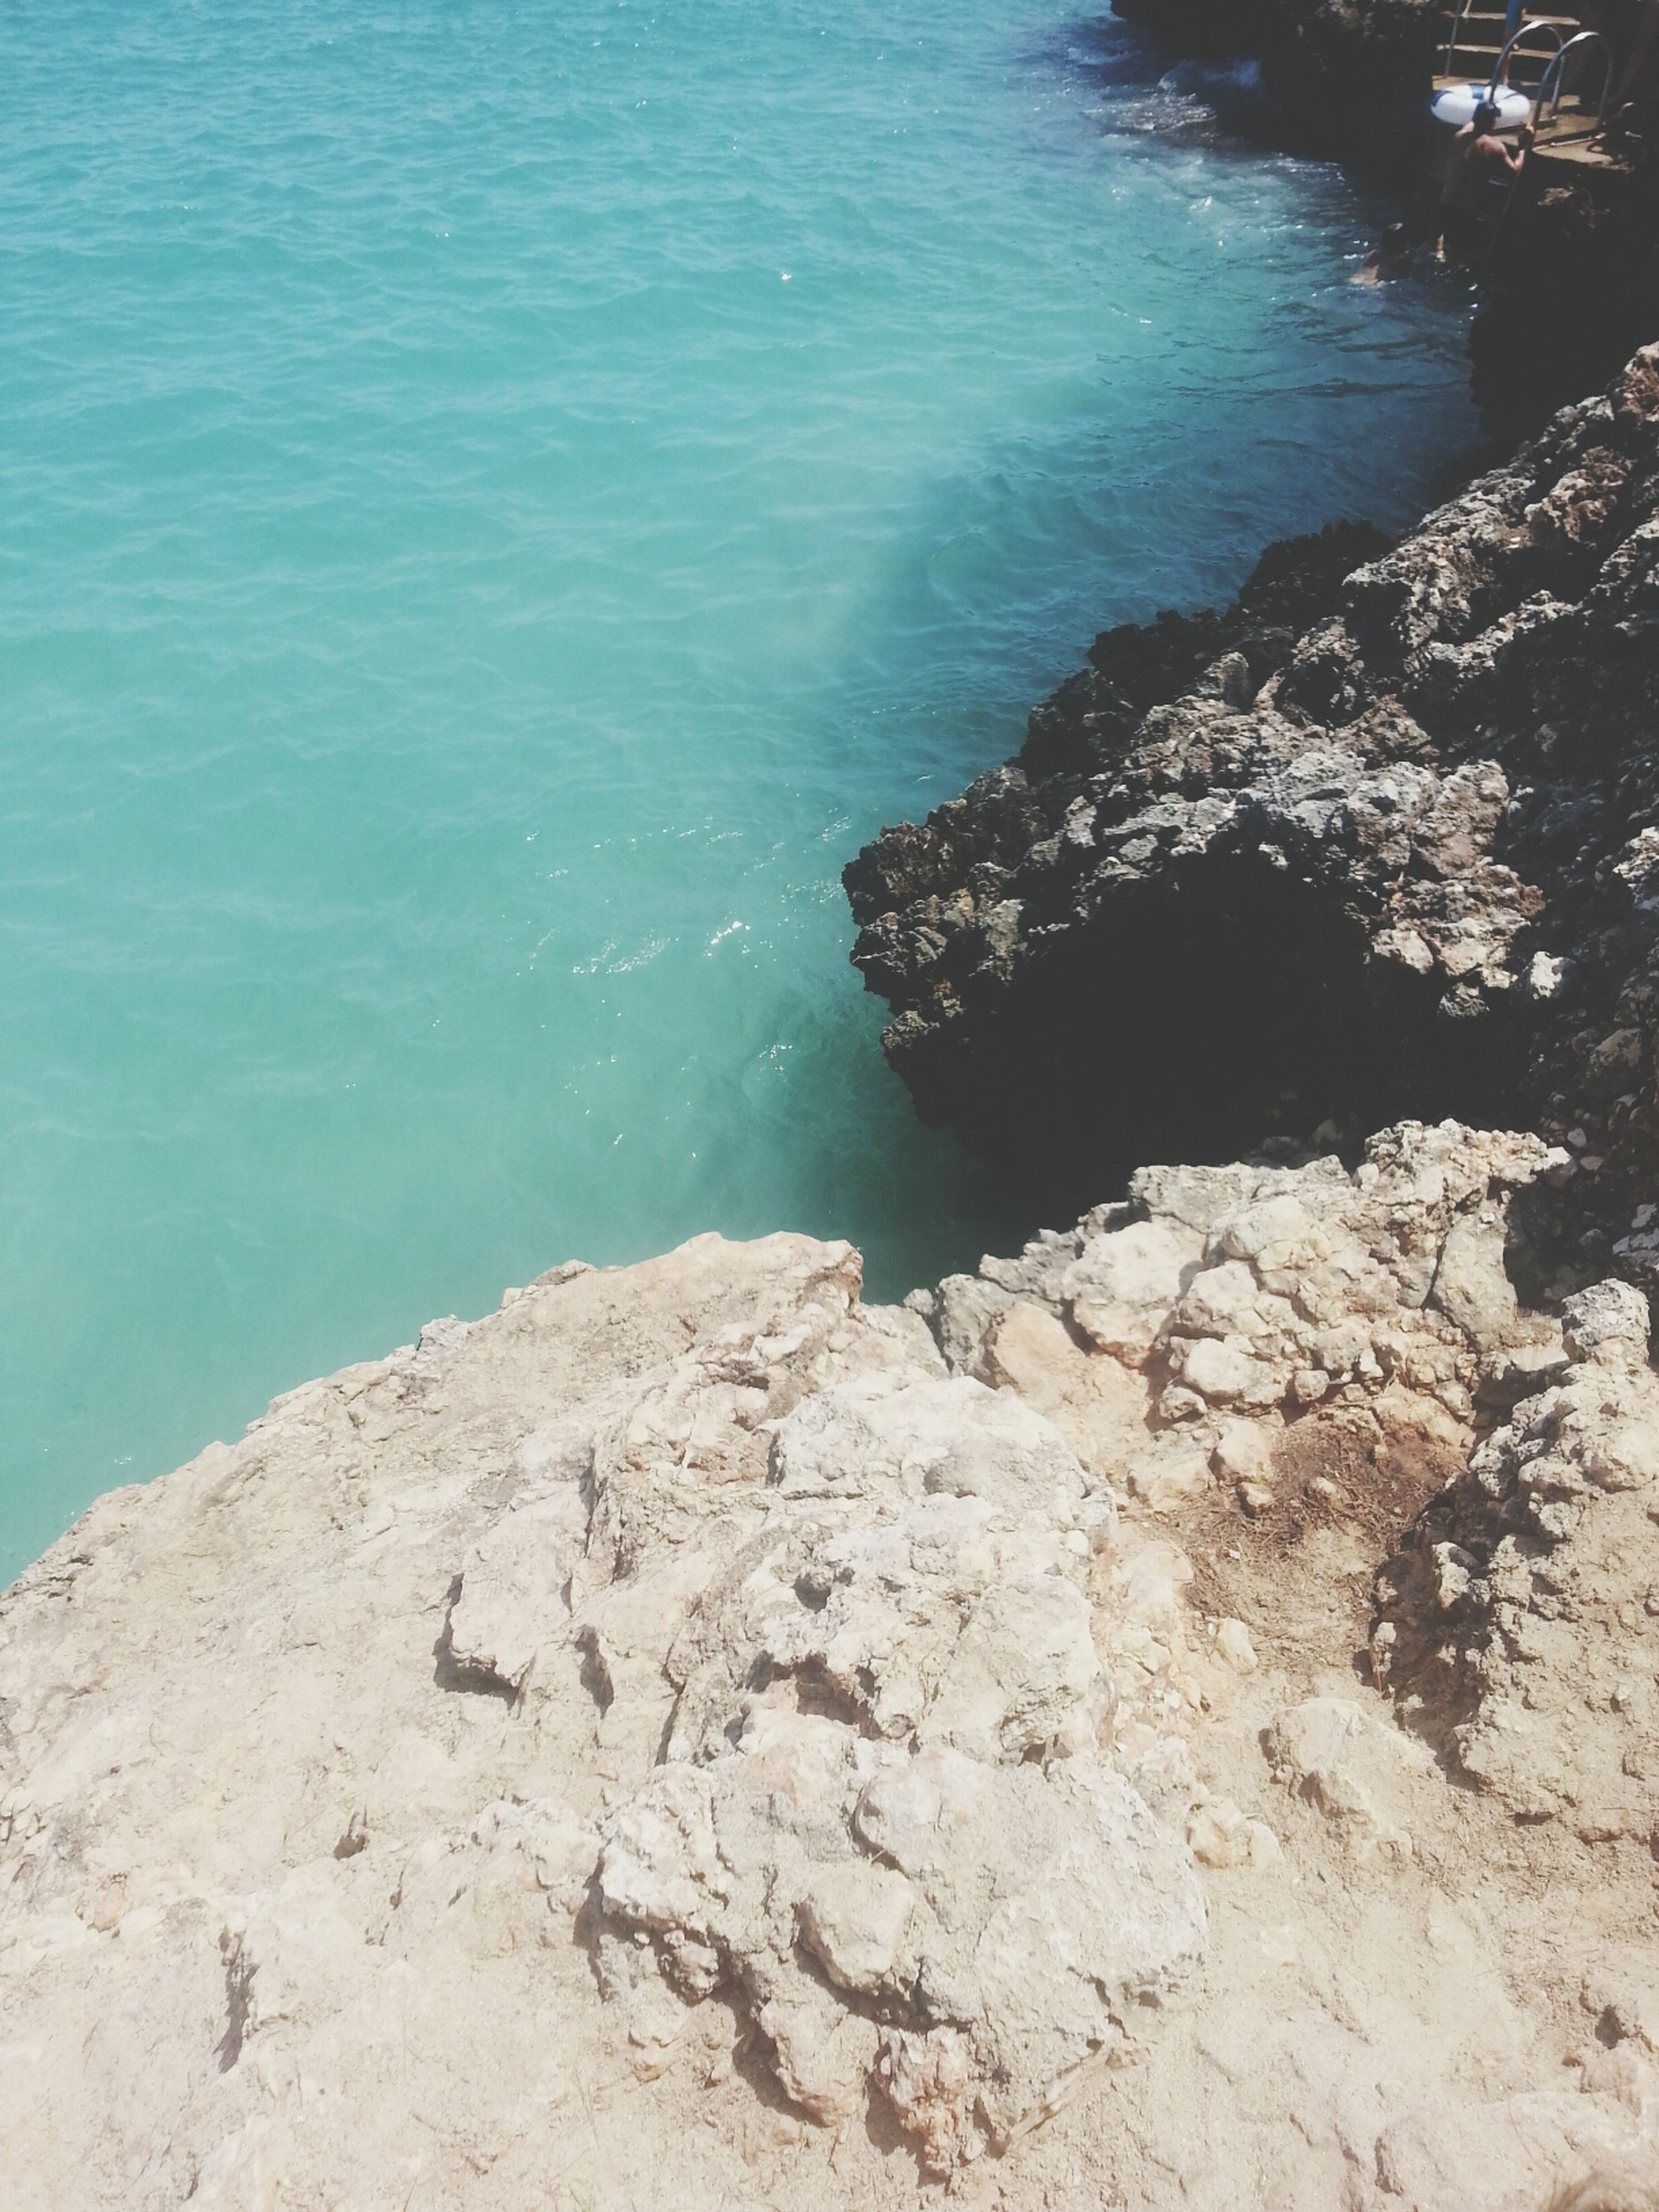 water, sea, rock - object, tranquility, high angle view, nature, rock formation, tranquil scene, beauty in nature, scenics, blue, shore, beach, day, rock, sunlight, outdoors, idyllic, cliff, no people